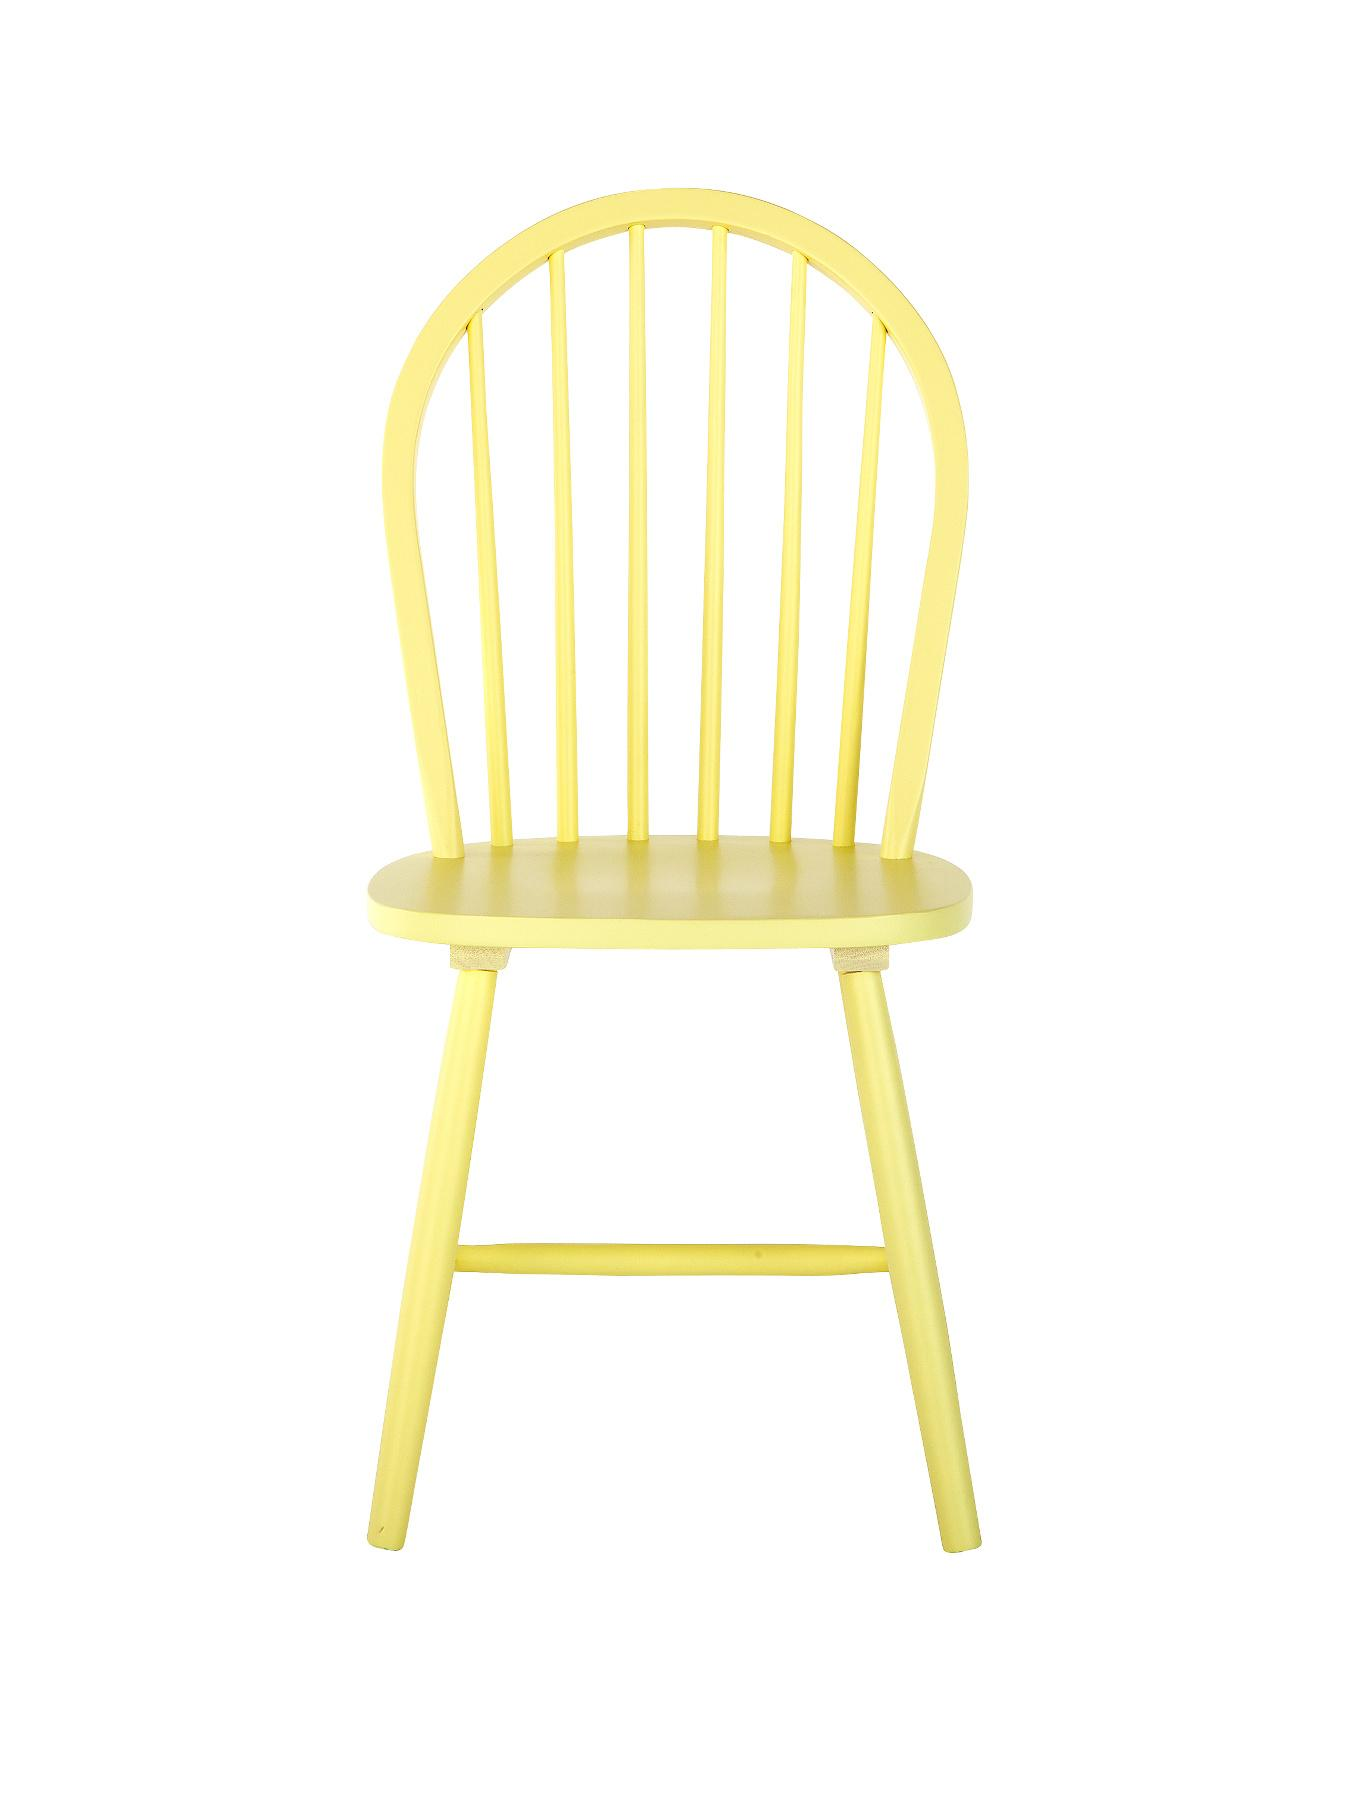 Daisy Chair - Yellow, Yellow